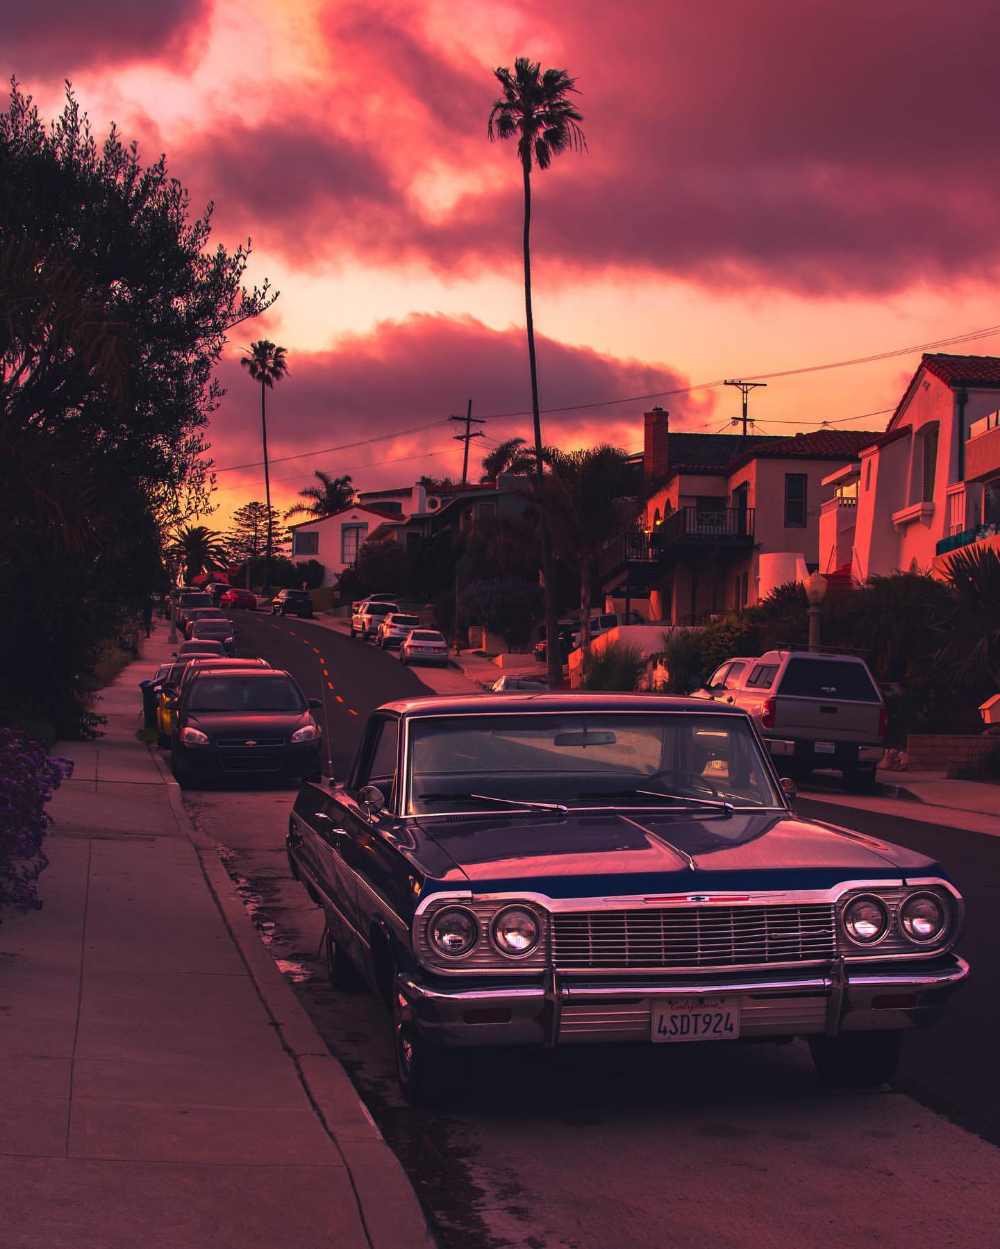 Retro Car Sunset Aesthetic Wallpapers - Wallpaper Cave